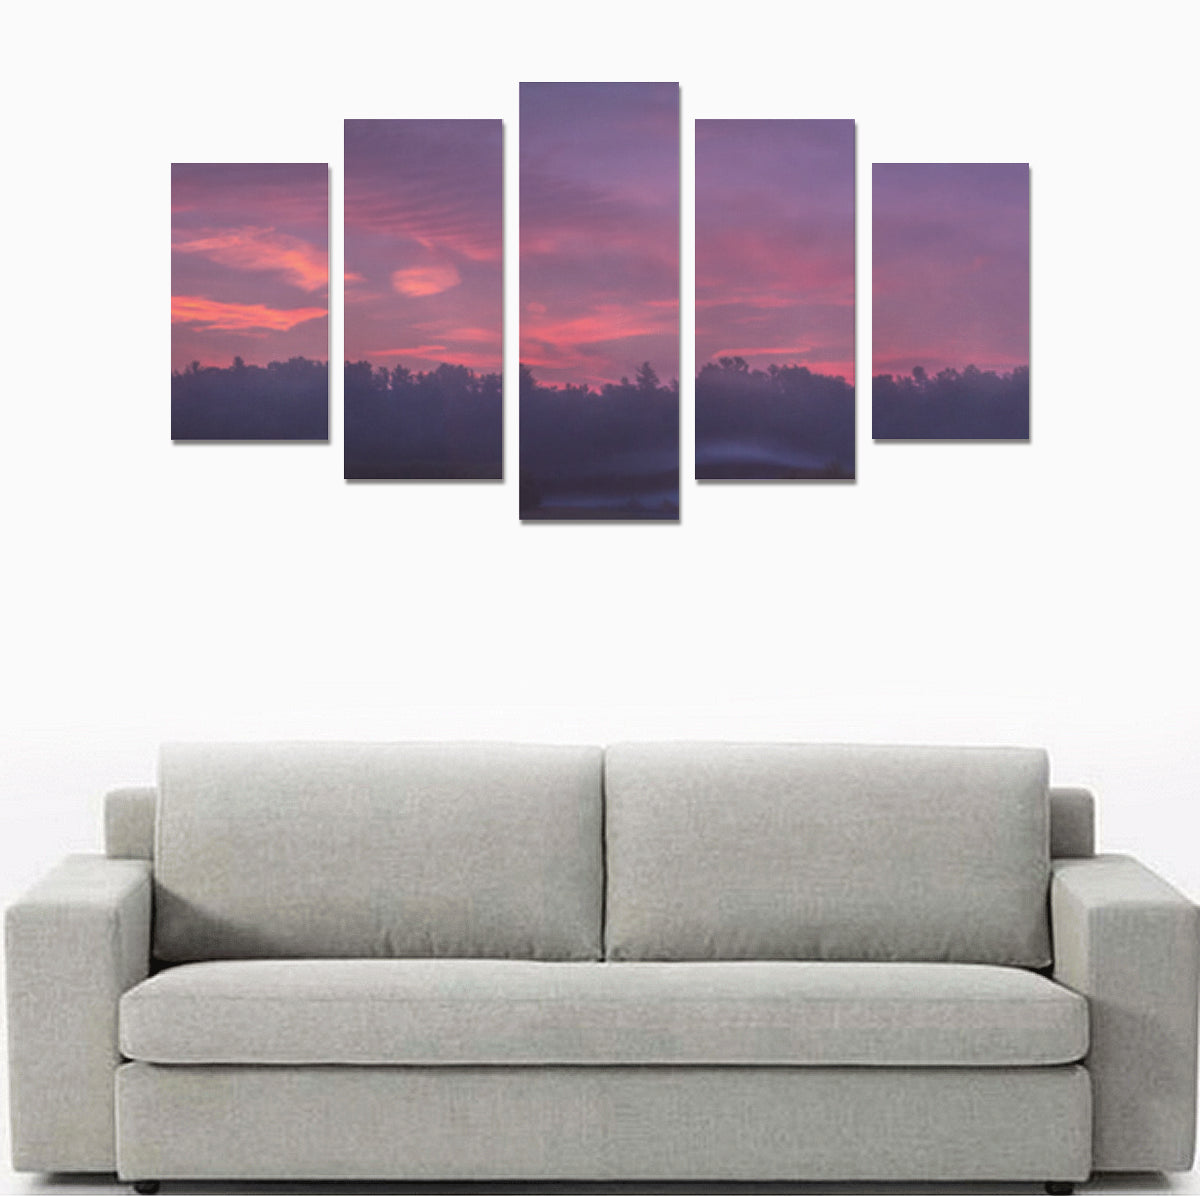 Panorama 0733 Canvas Print Sets - Size A